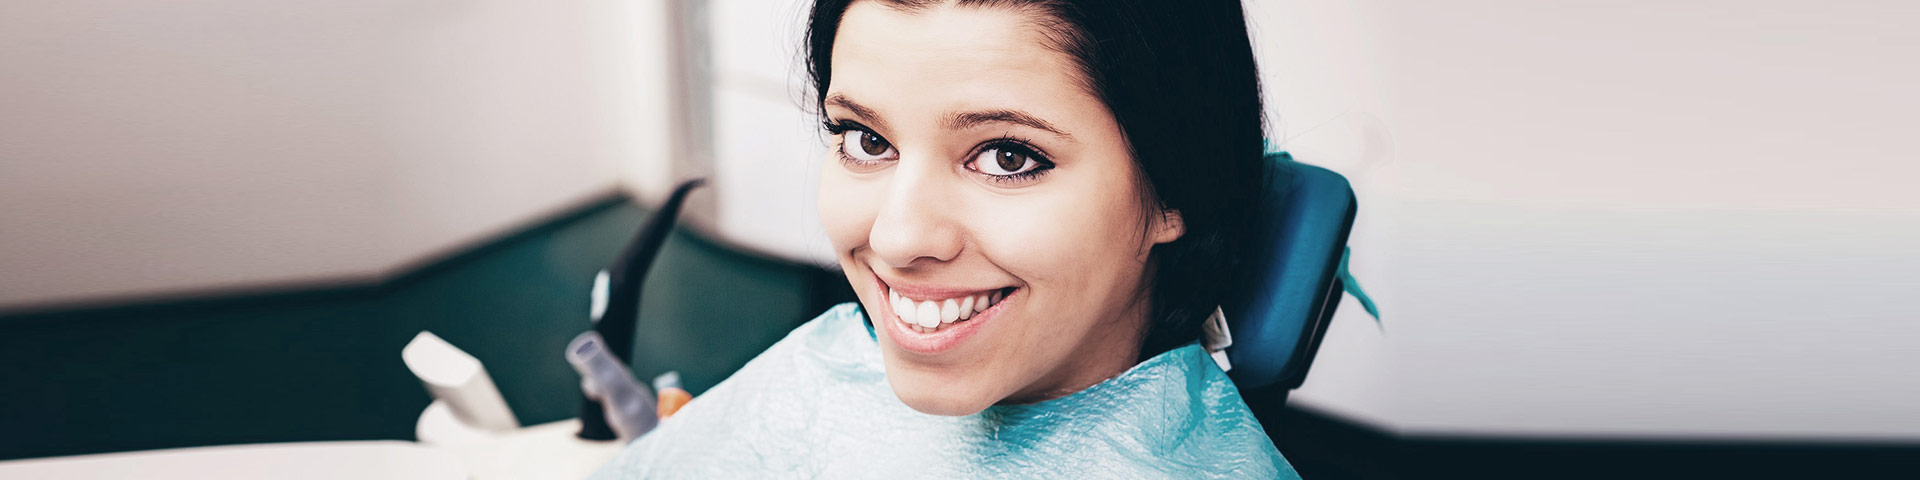 Girl with beautiful smile after Root Canal treatment